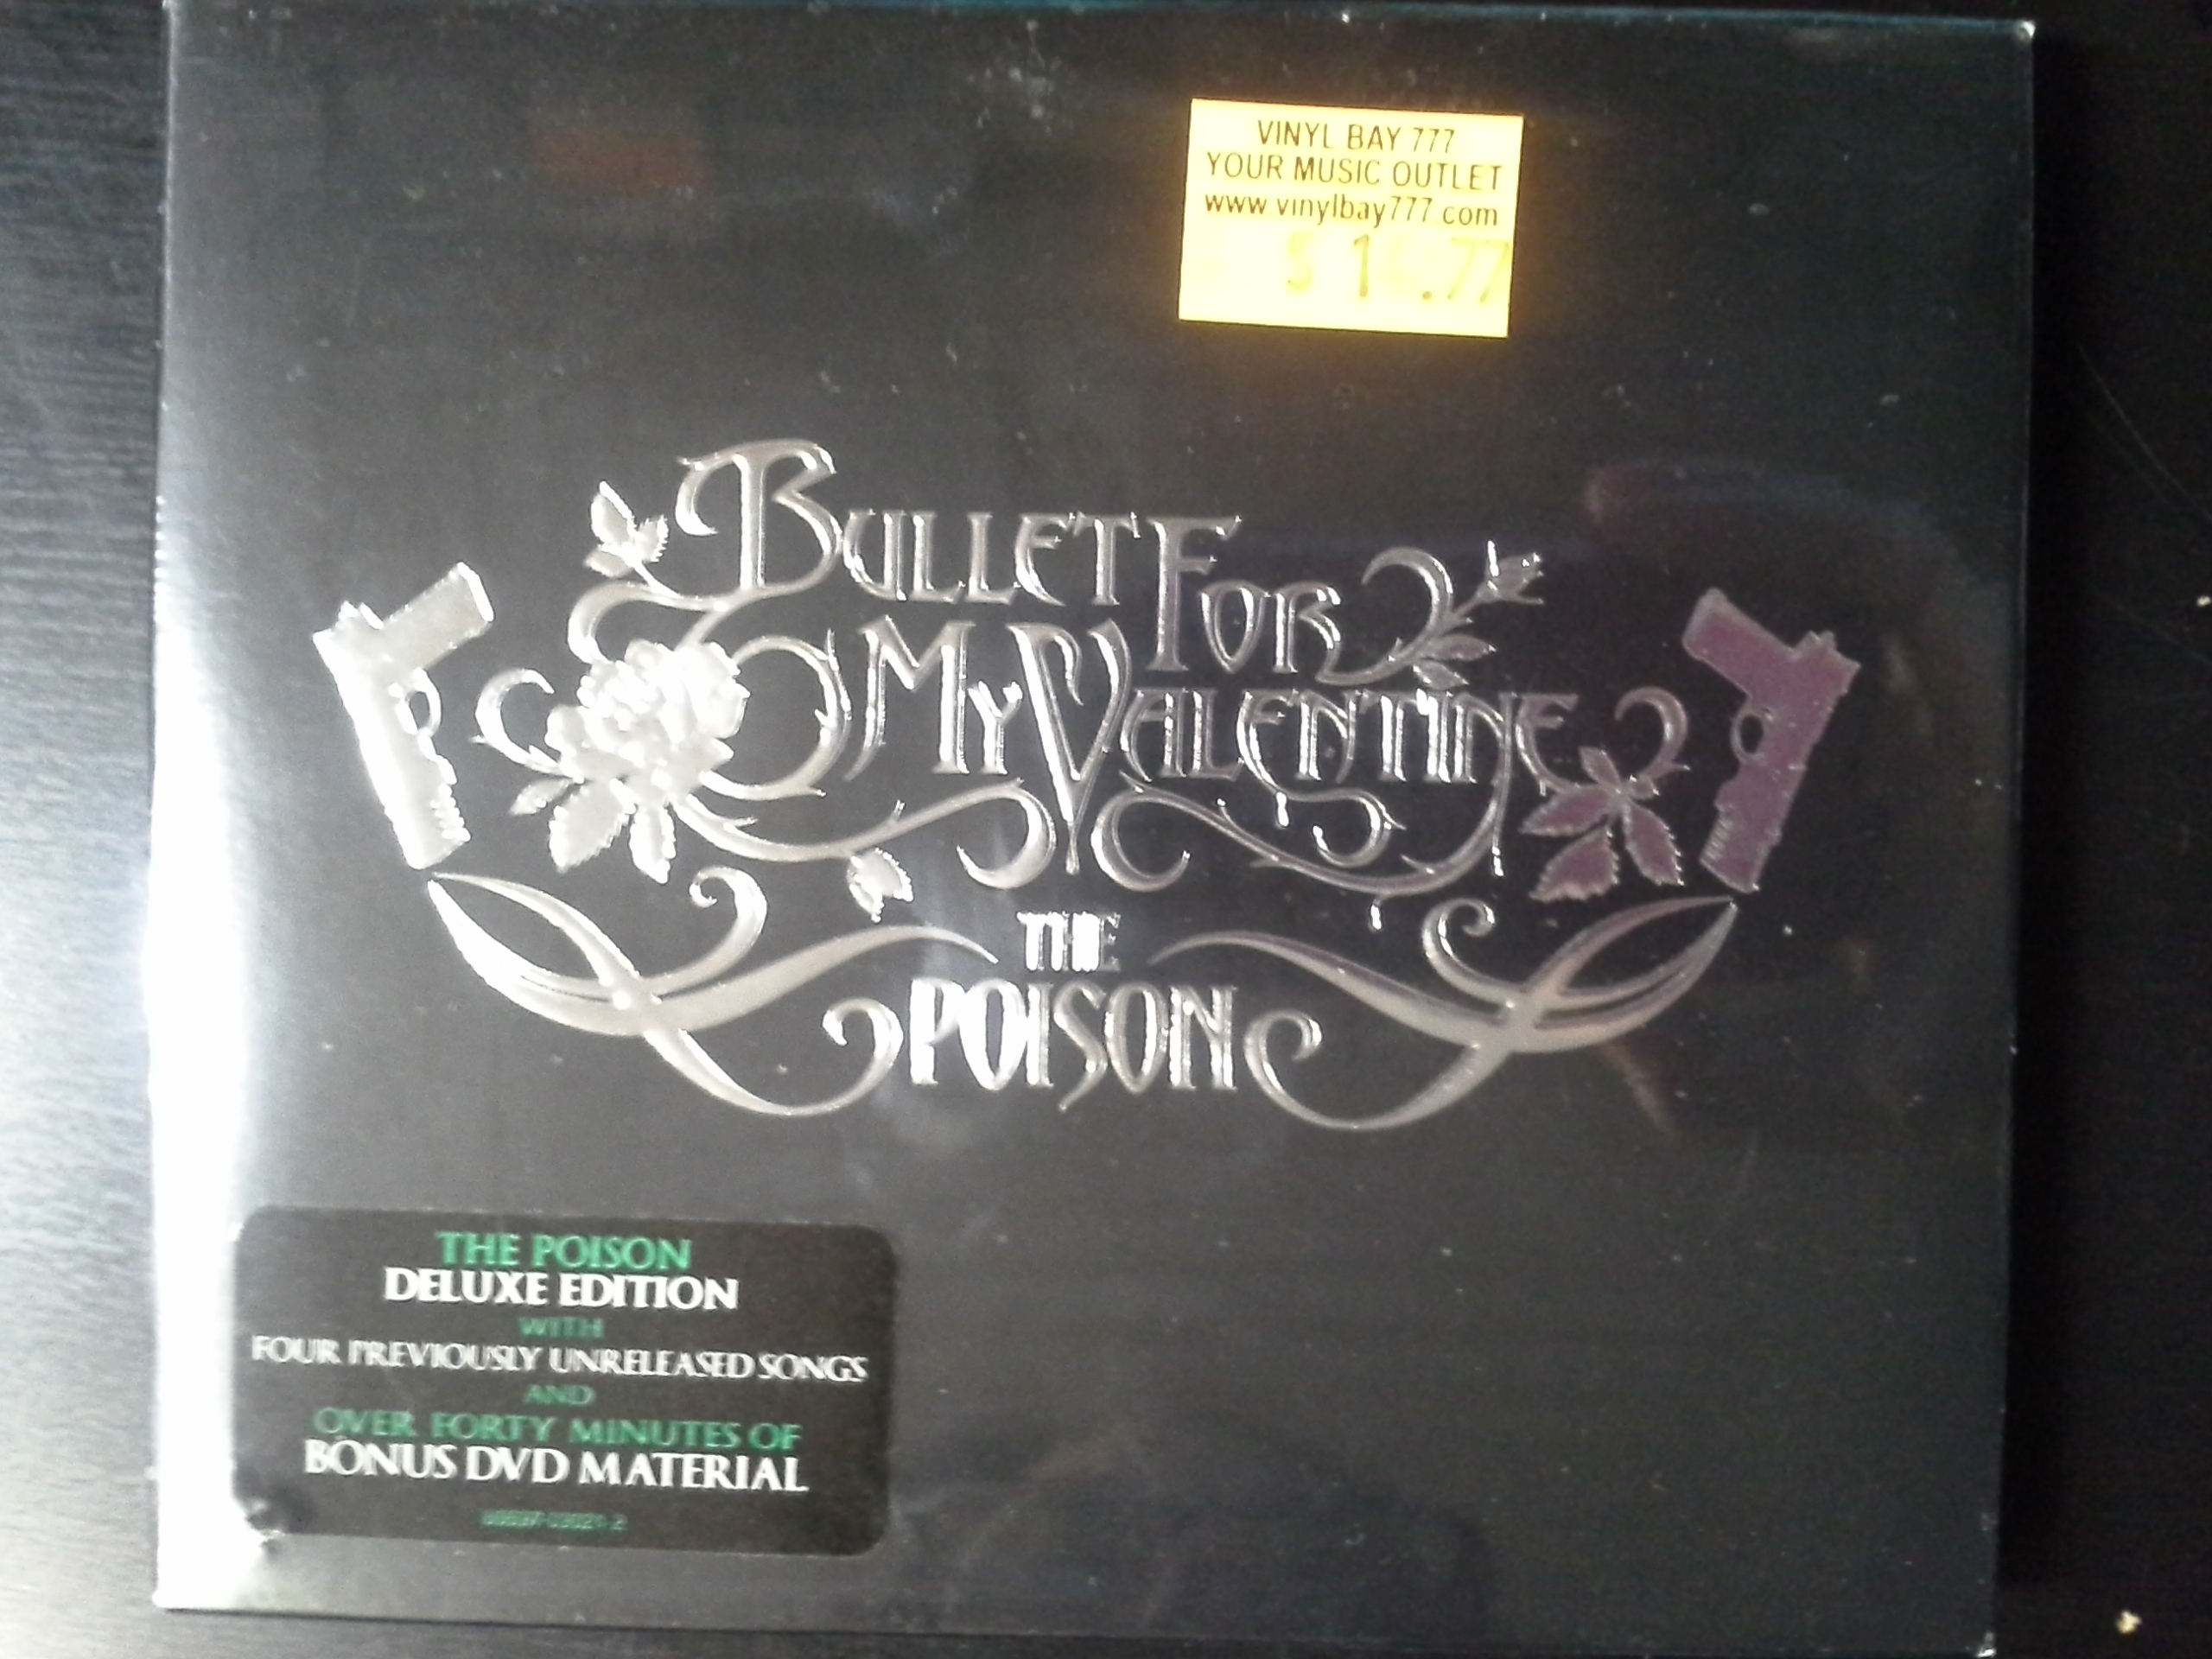 SEALED CD / DVD Set Bullet For My Valentine The Poison Deluxe Edition 2007  20 20 Entertainment   VinylBay777